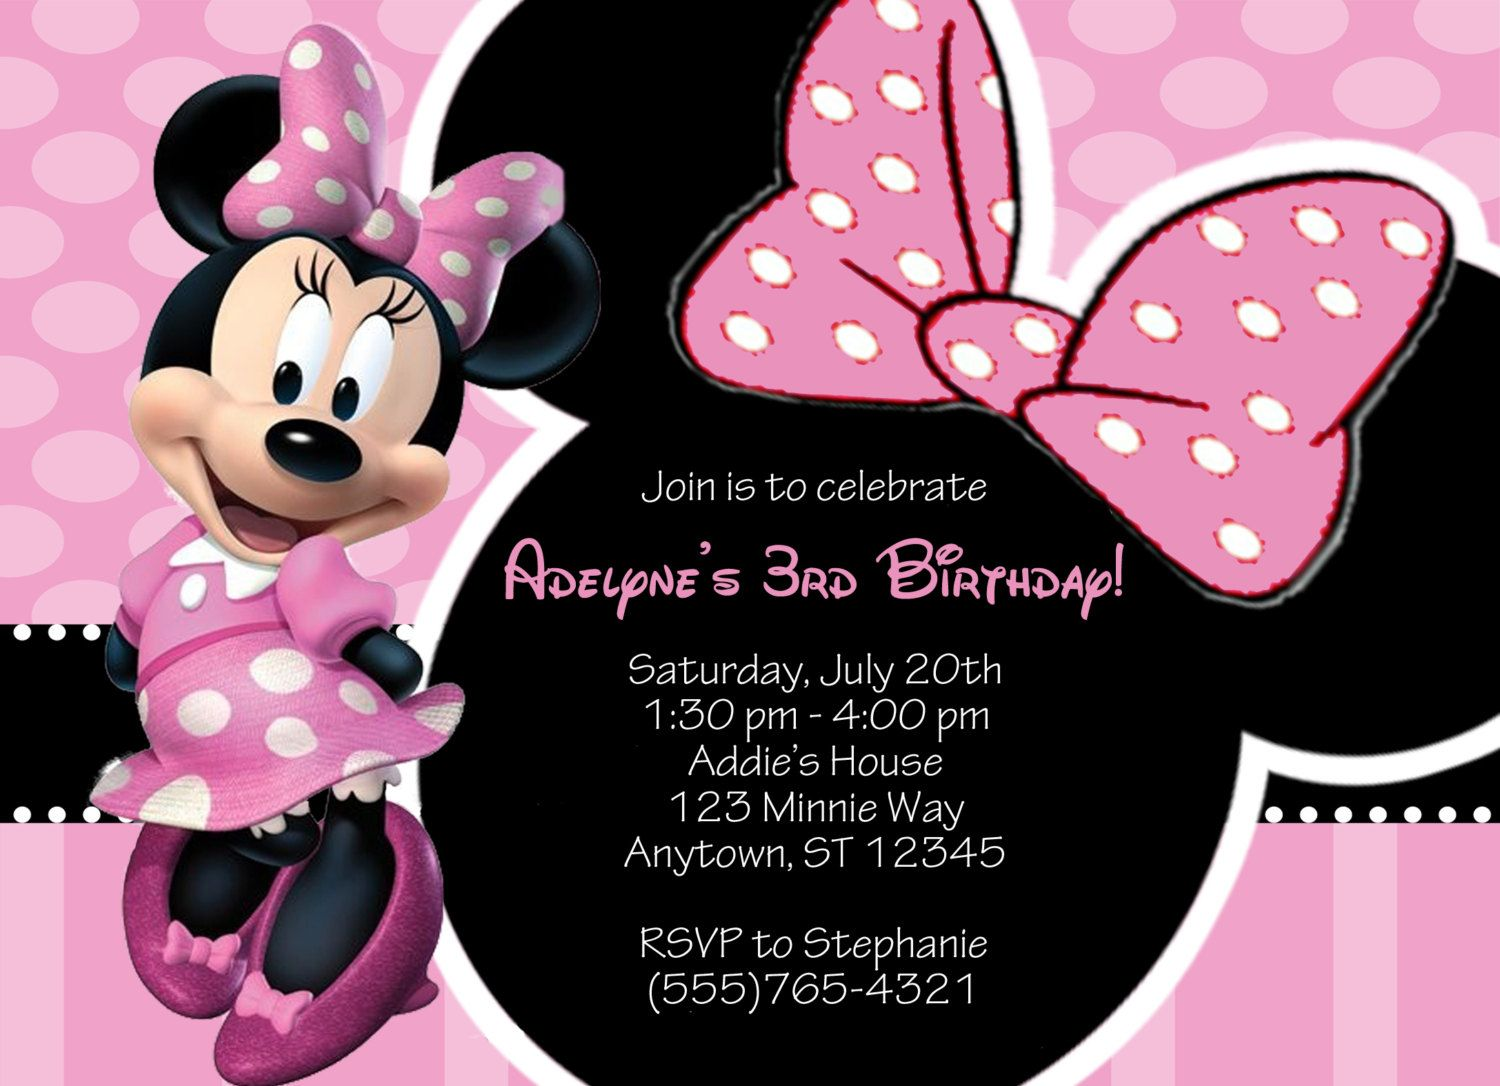 Minnie Mouse Custom Invitations with adorable invitation sample